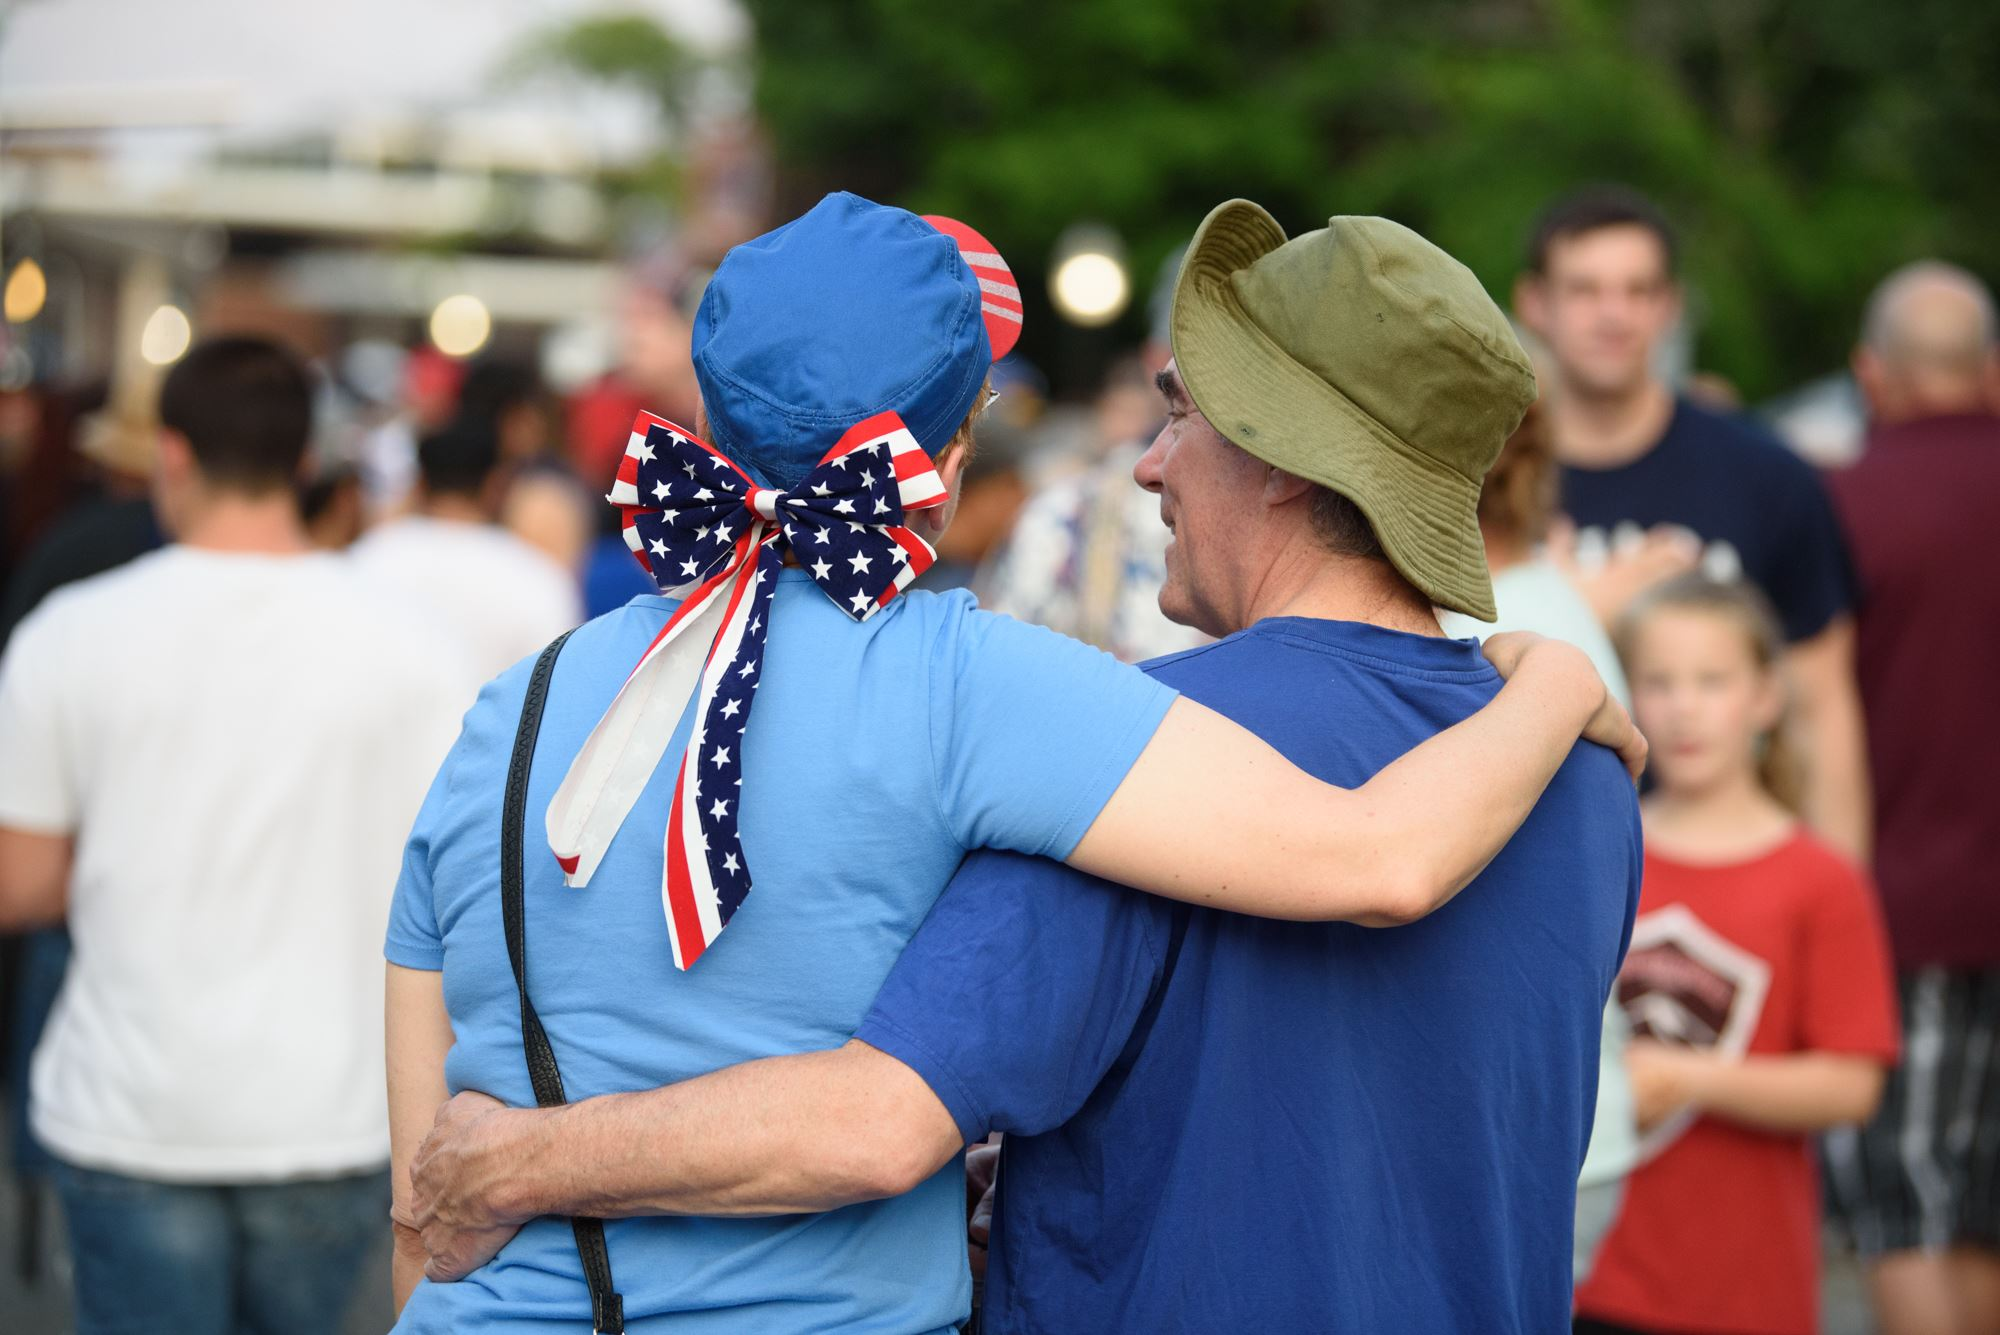 070318_FitchburgCivicDays-87